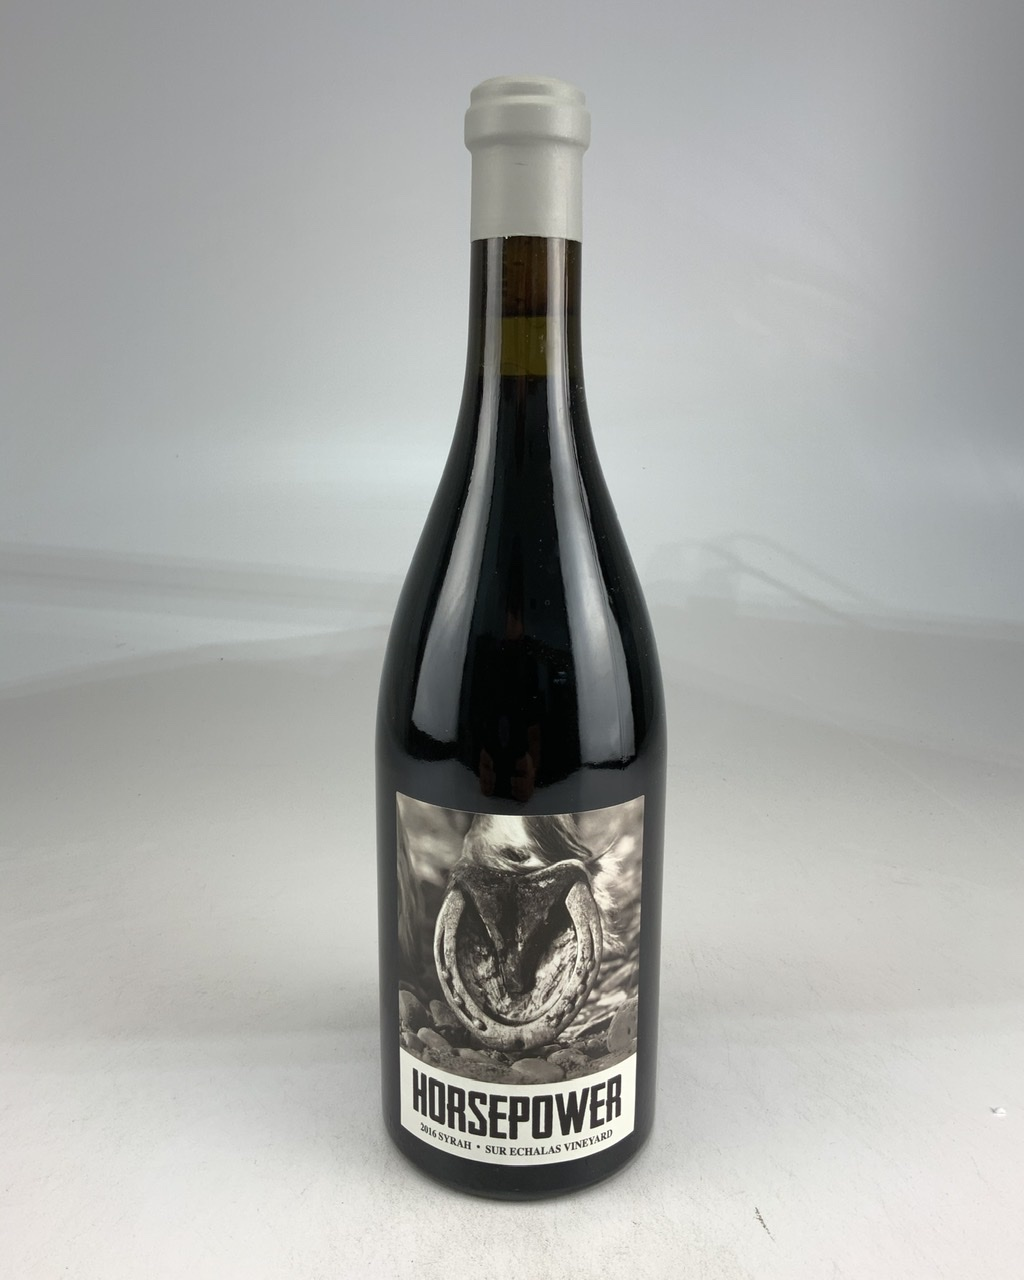 2016 Horsepower Syrah Sur Echalas Vineyard, Walla Walla Valley RP--97